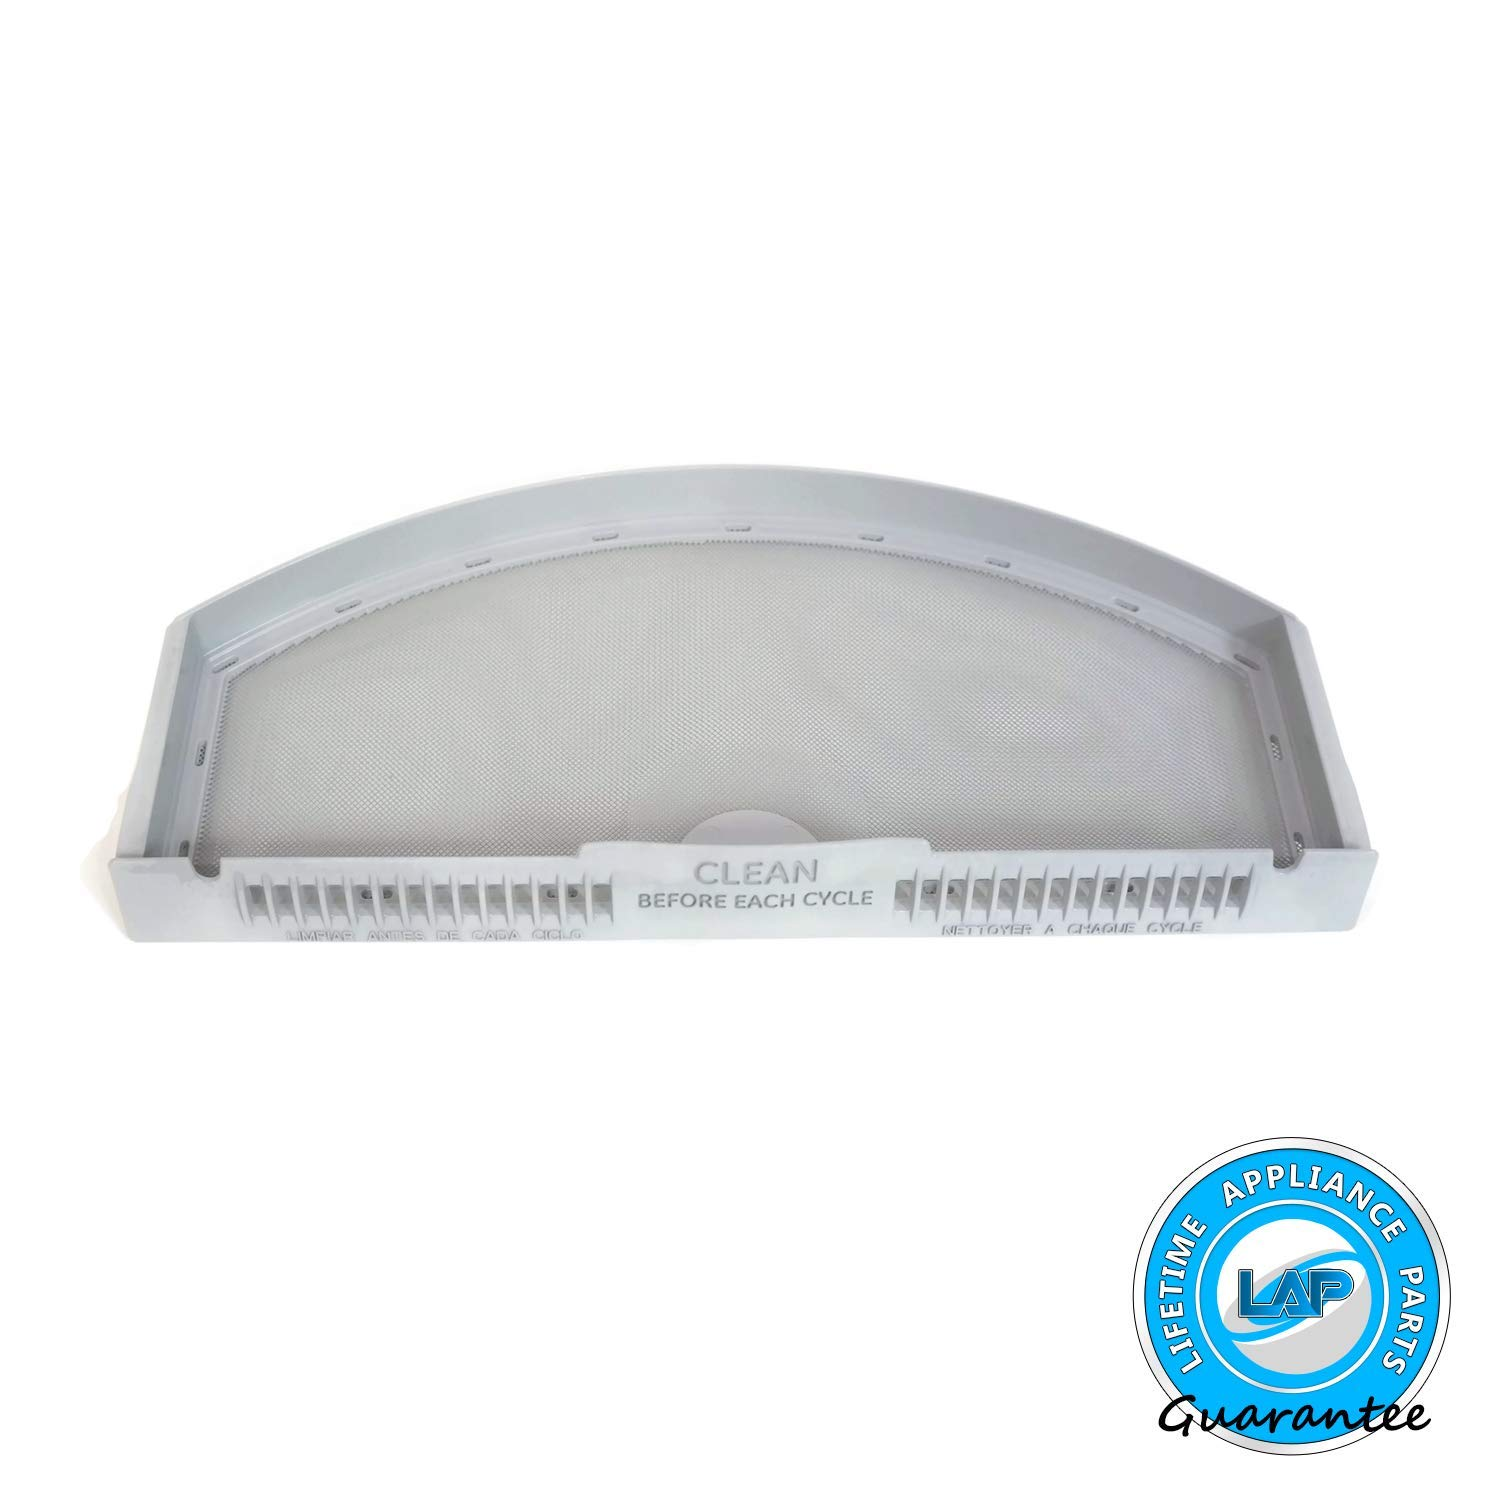 GE 1 Dryer Lifetime Appliance WE03X23881 Lint Filter Screen for General Electric